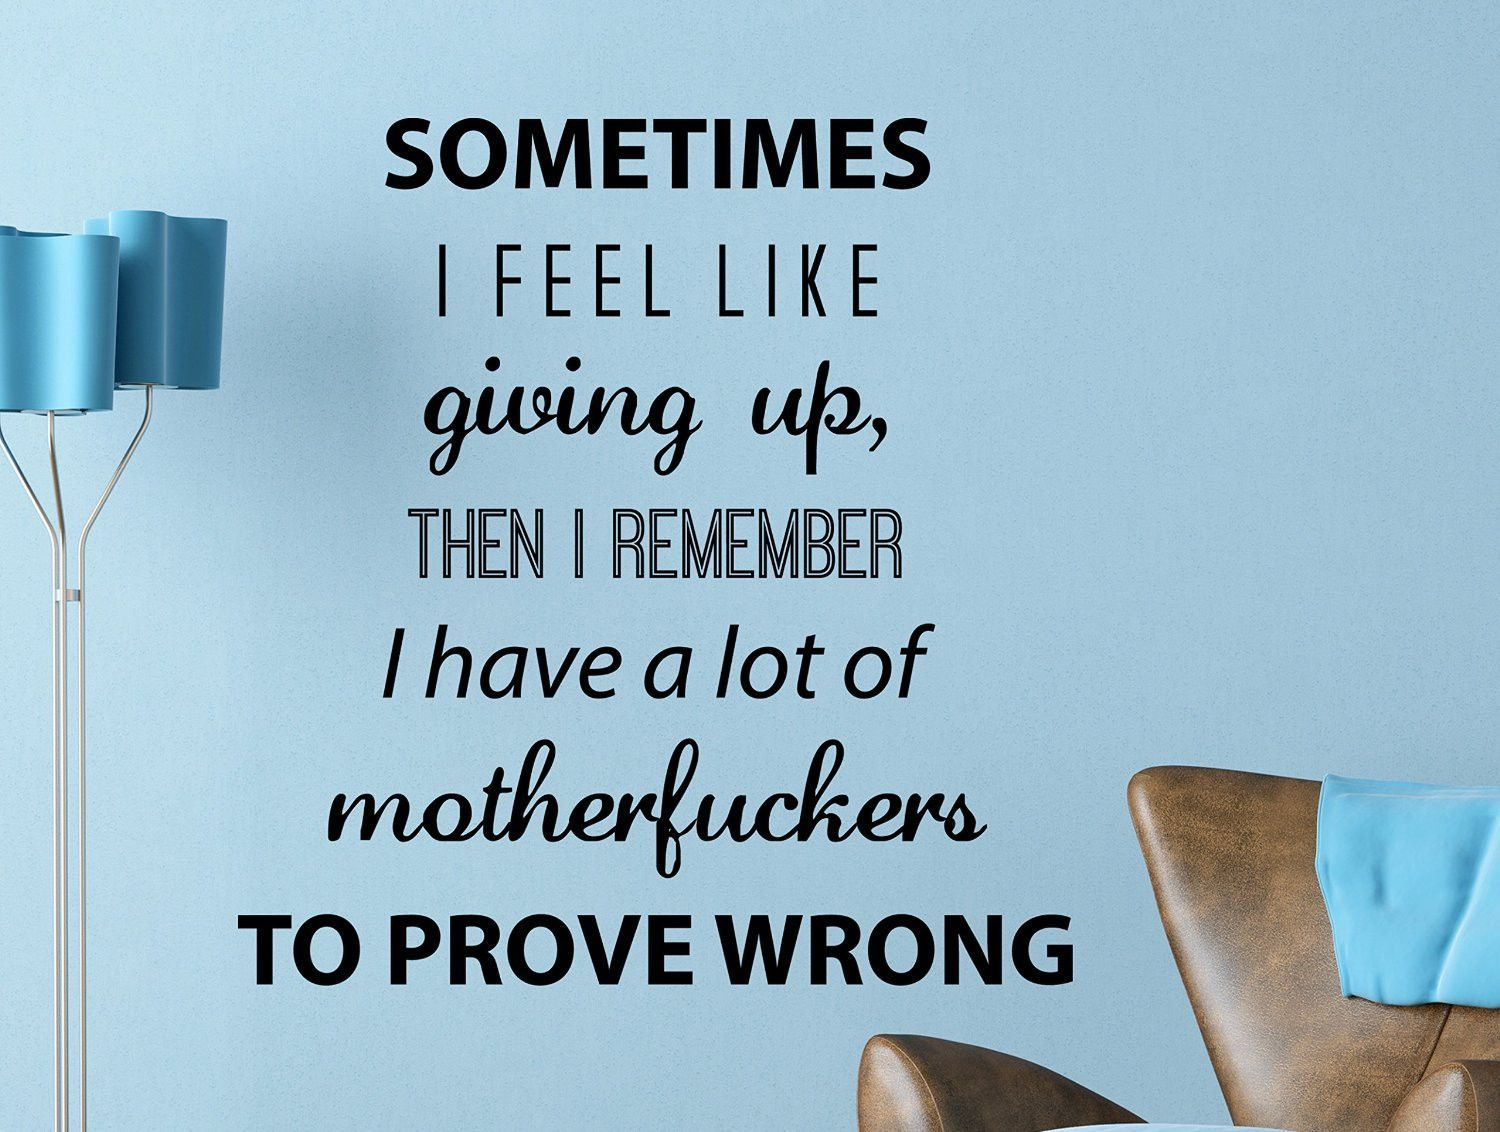 sometimes i feel like giving up motivational quote wall decal motivational quote wall decal art home decor 17x18 inches